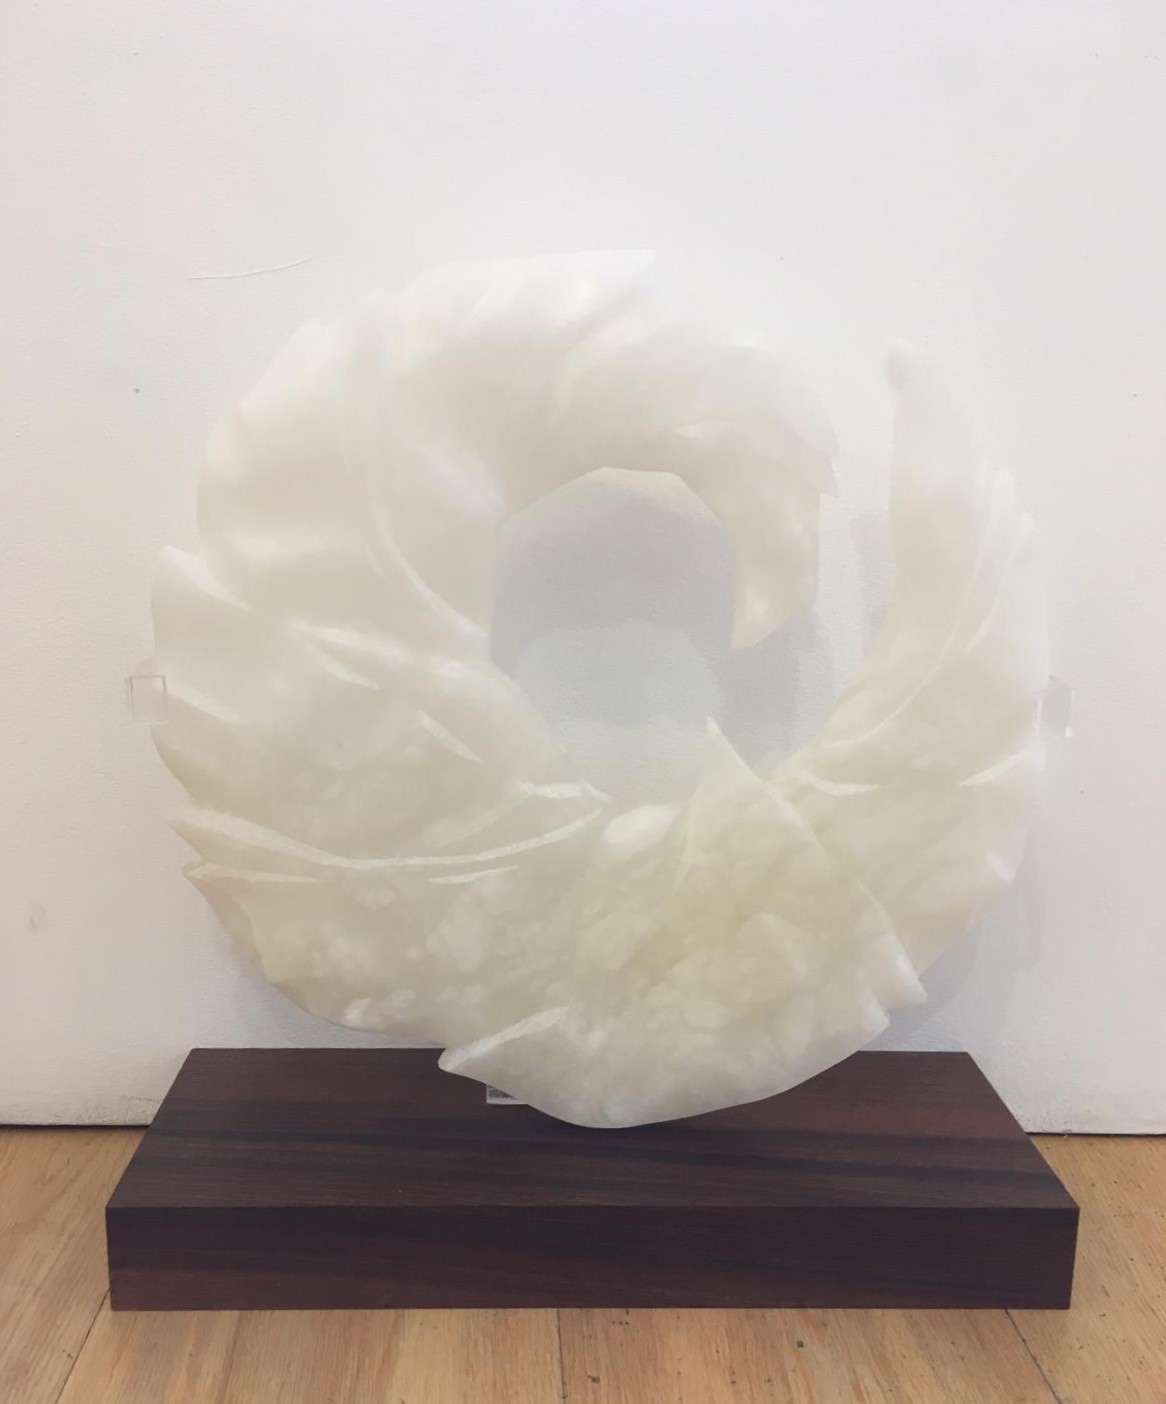 "'""Maelstrom"" - Alabaster and sapele plinth' by artist Ann Coomber"